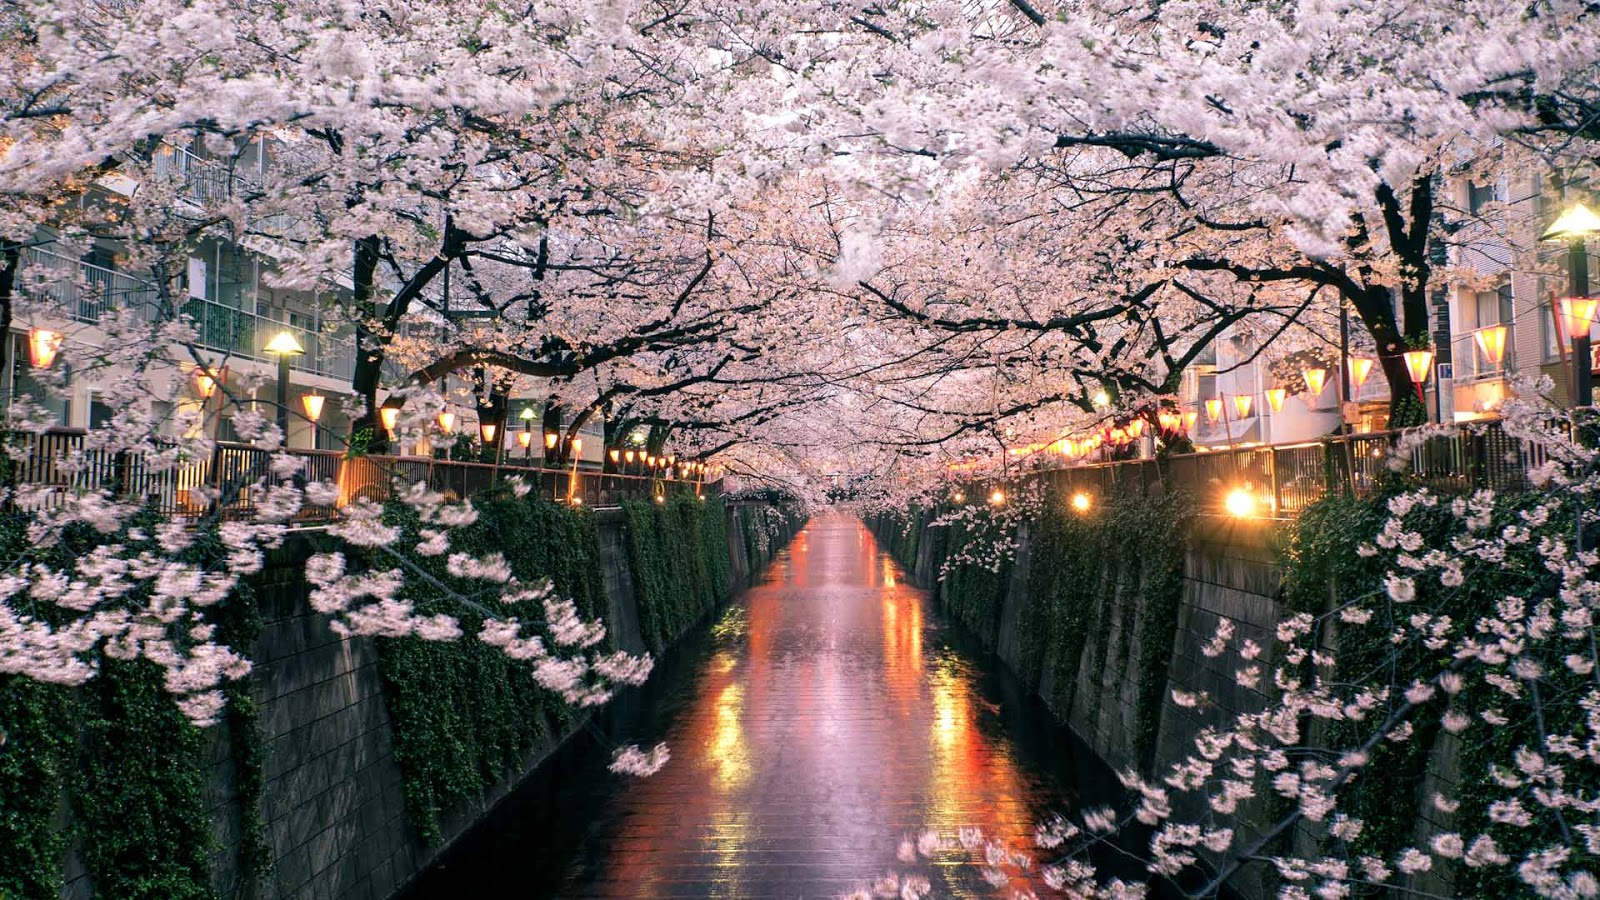 Cherry blossoms over the Meguro River, Tokyo, Japan © taketan/Getty Images